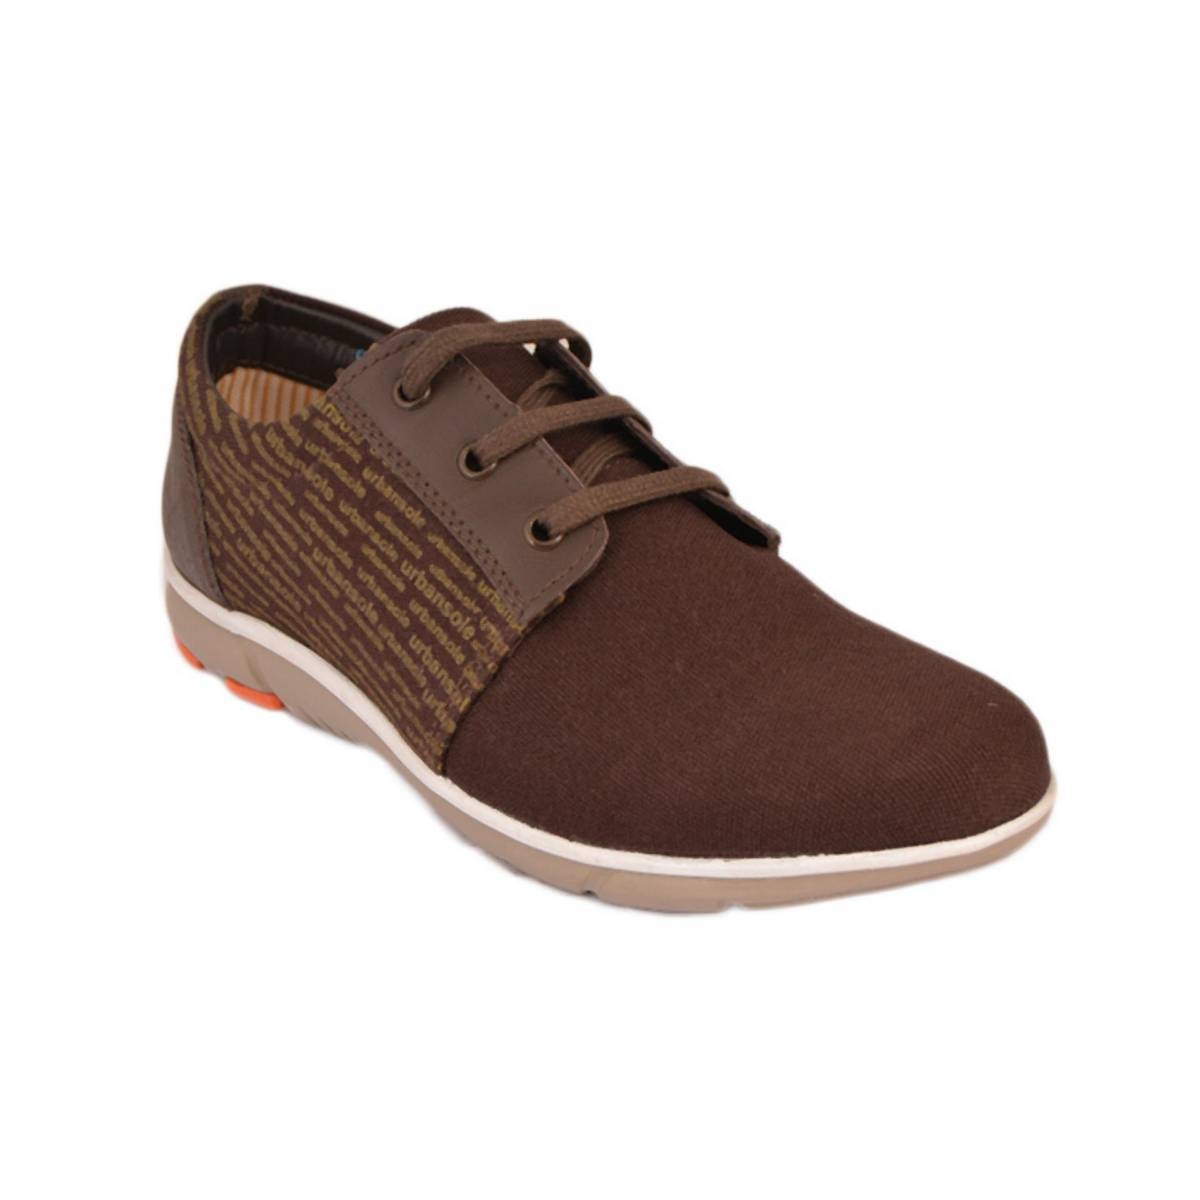 Urban Sole D. Brown Canvas Shoes  Winter Collection - CV-8101